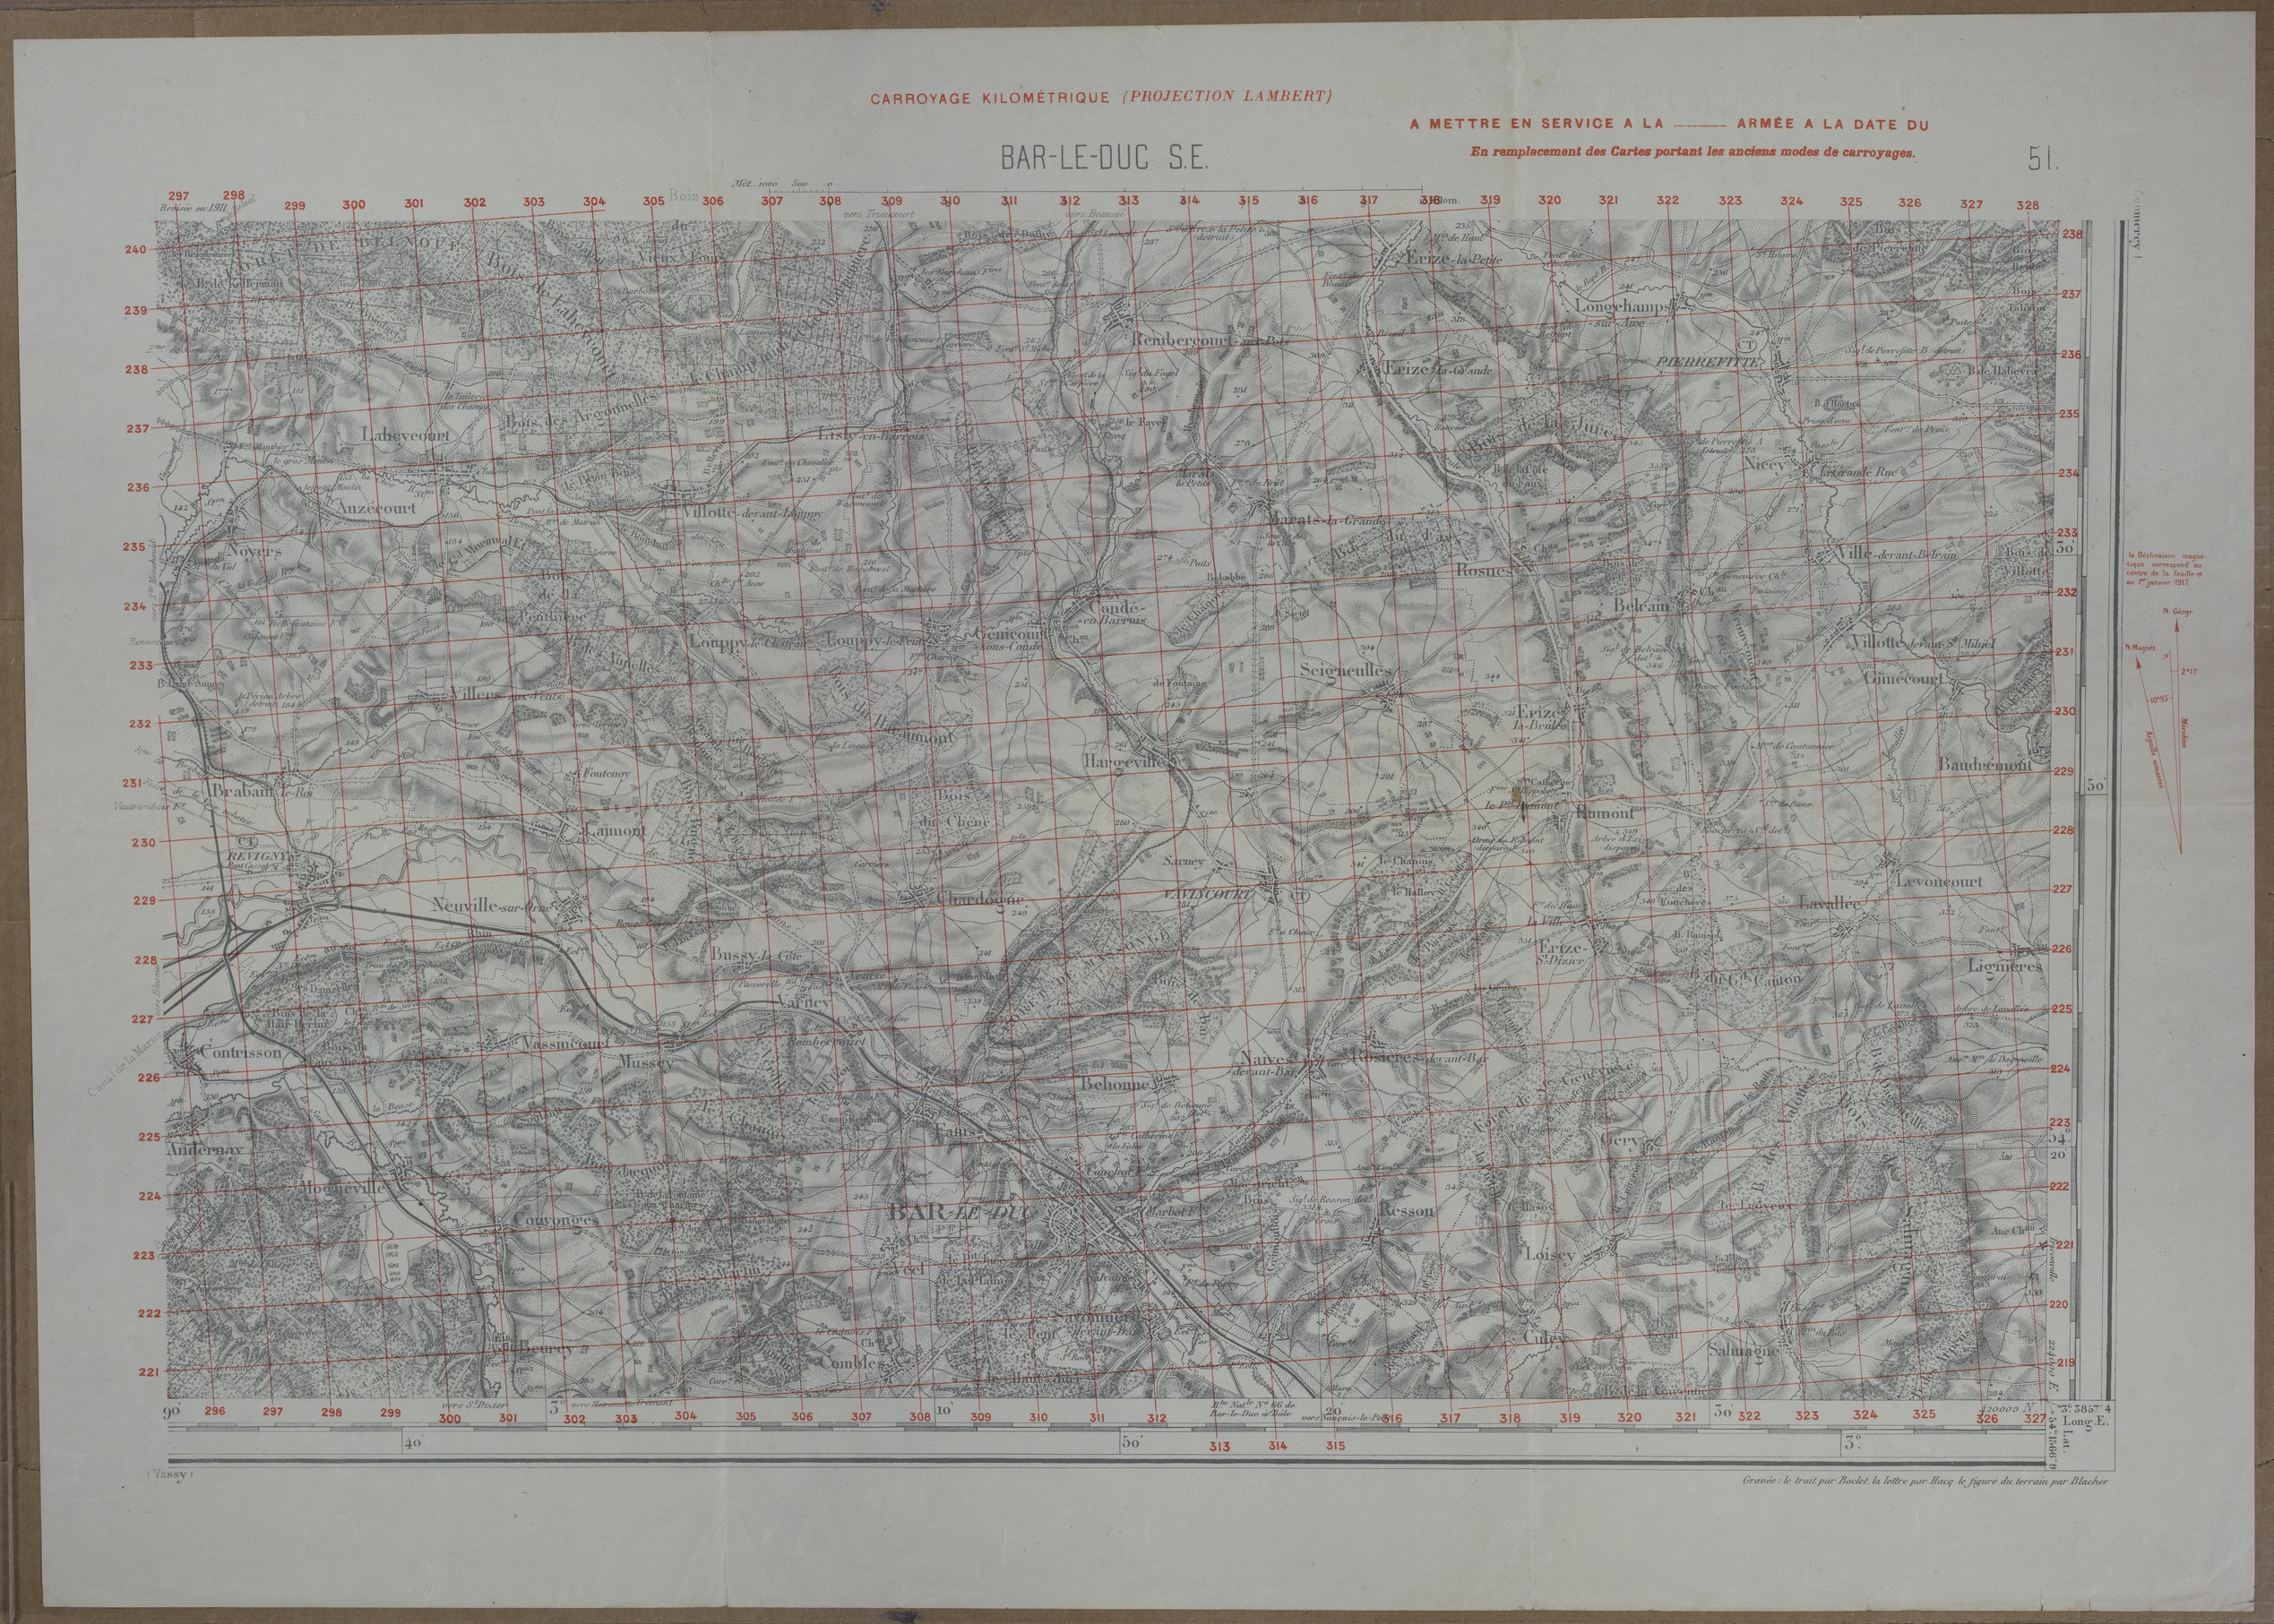 Map of the Battle of the Argonne Forest